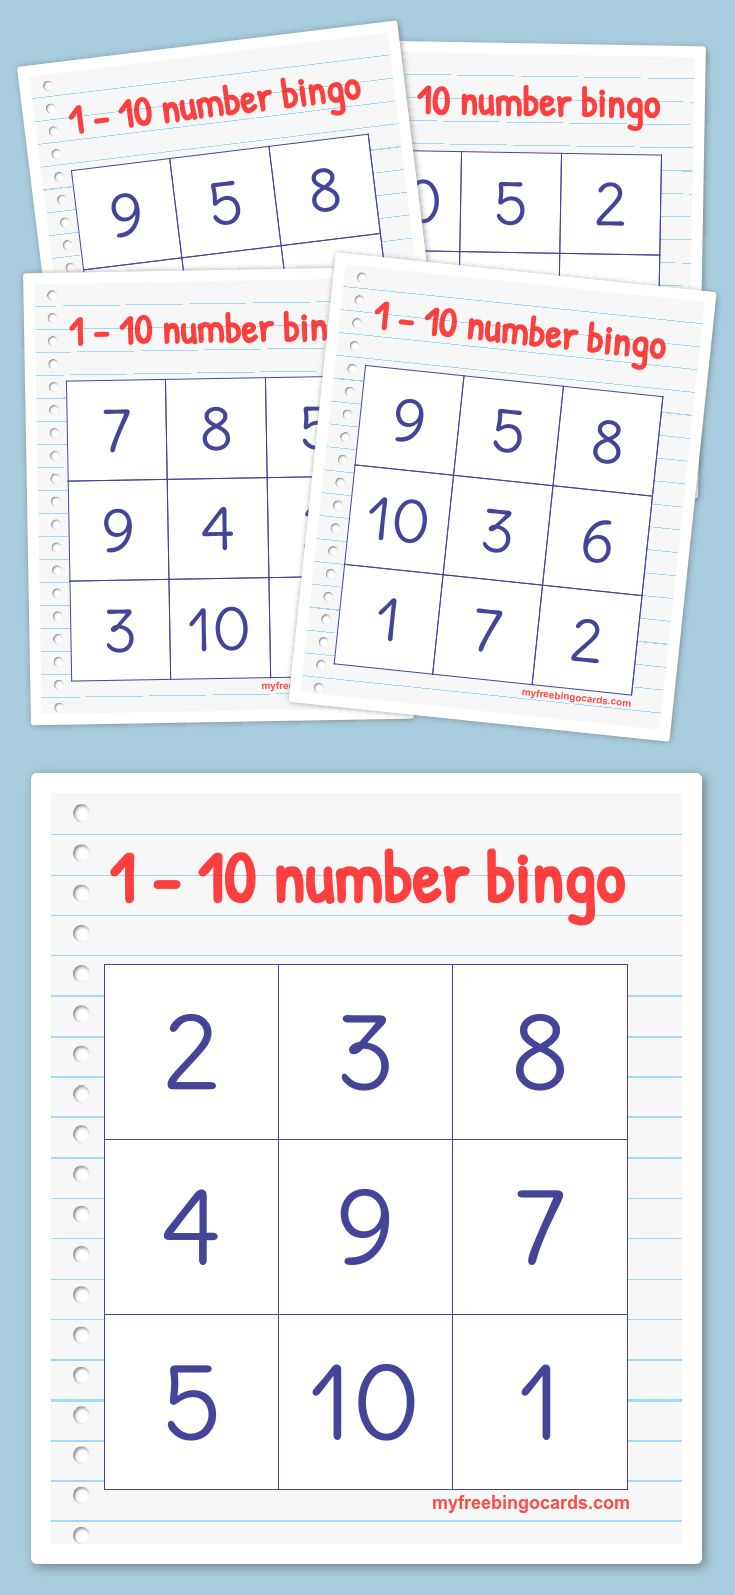 Free printable 1-10 number bingo cards. Perfect for kindergarten or preschool.